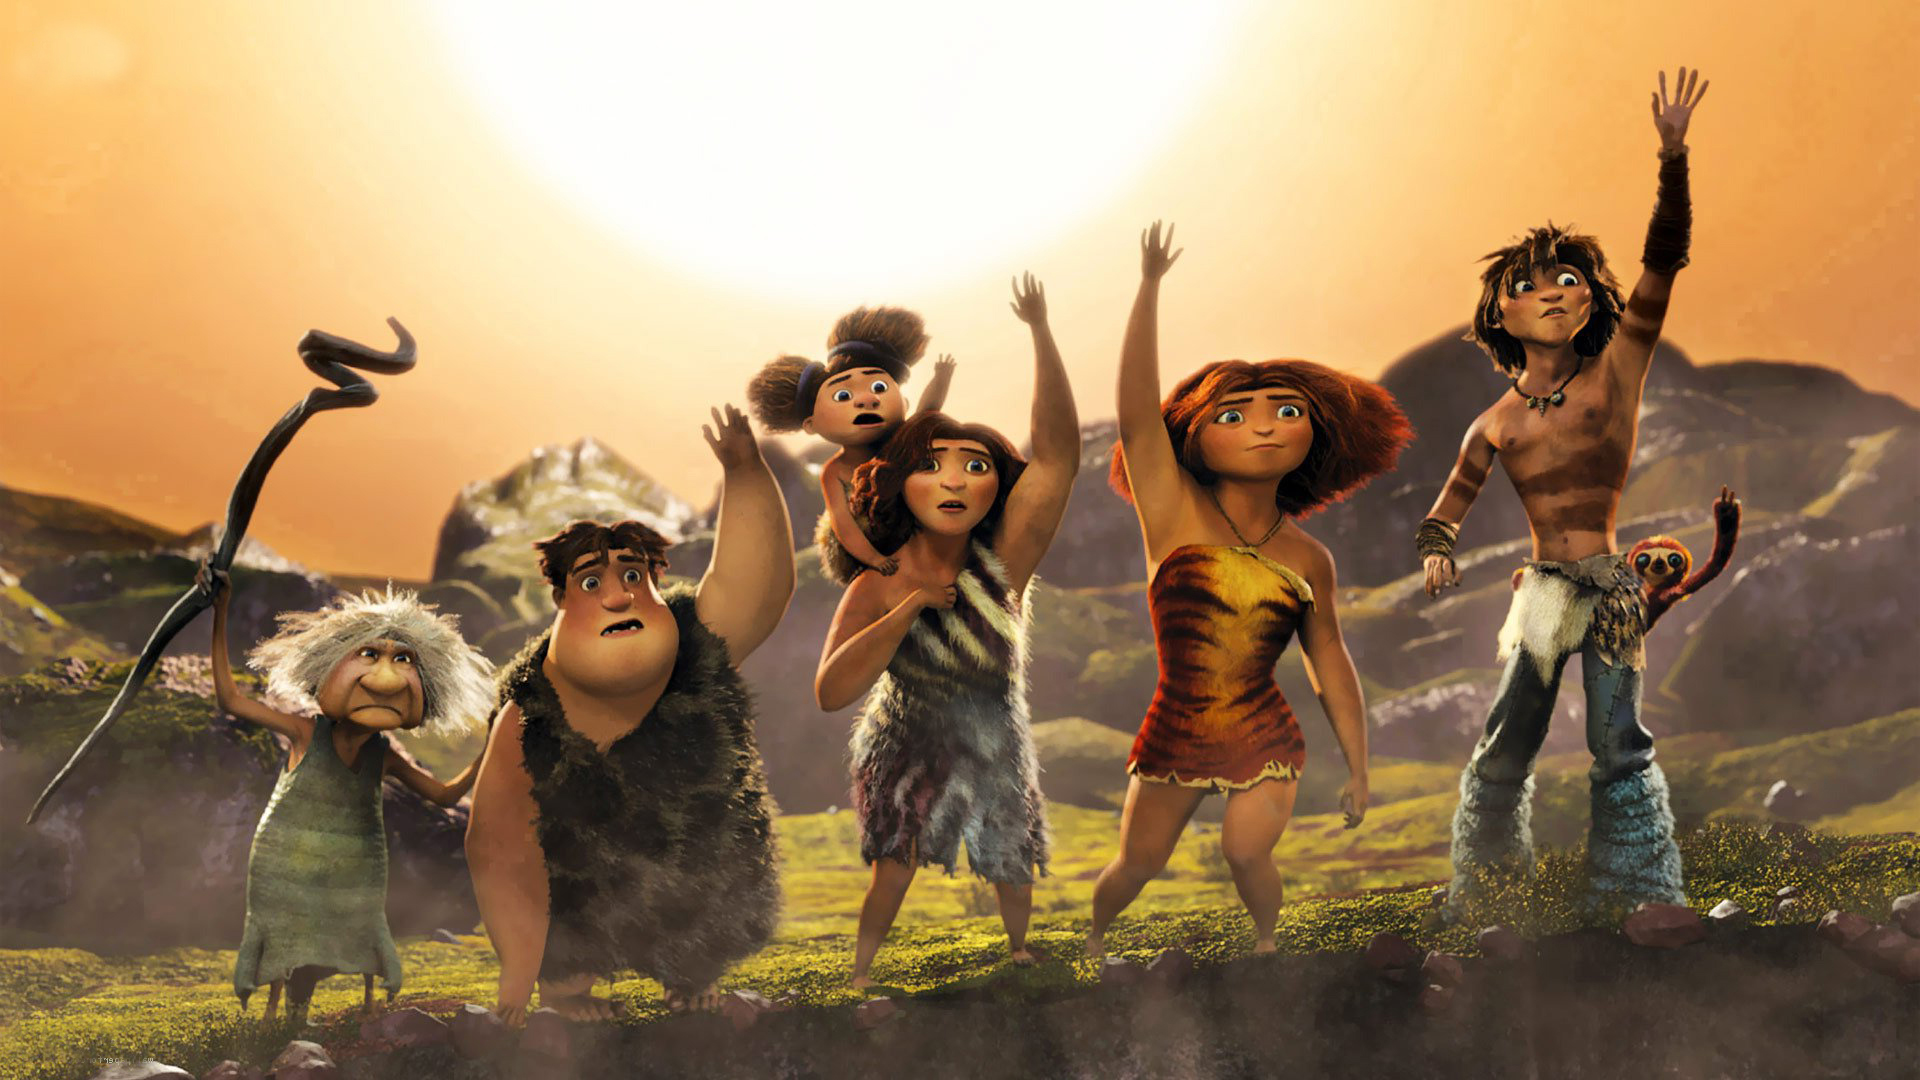 The croods hd wallpaper 61684 1920x1080 px hdwallsource the croods hd wallpaper 61684 voltagebd Gallery